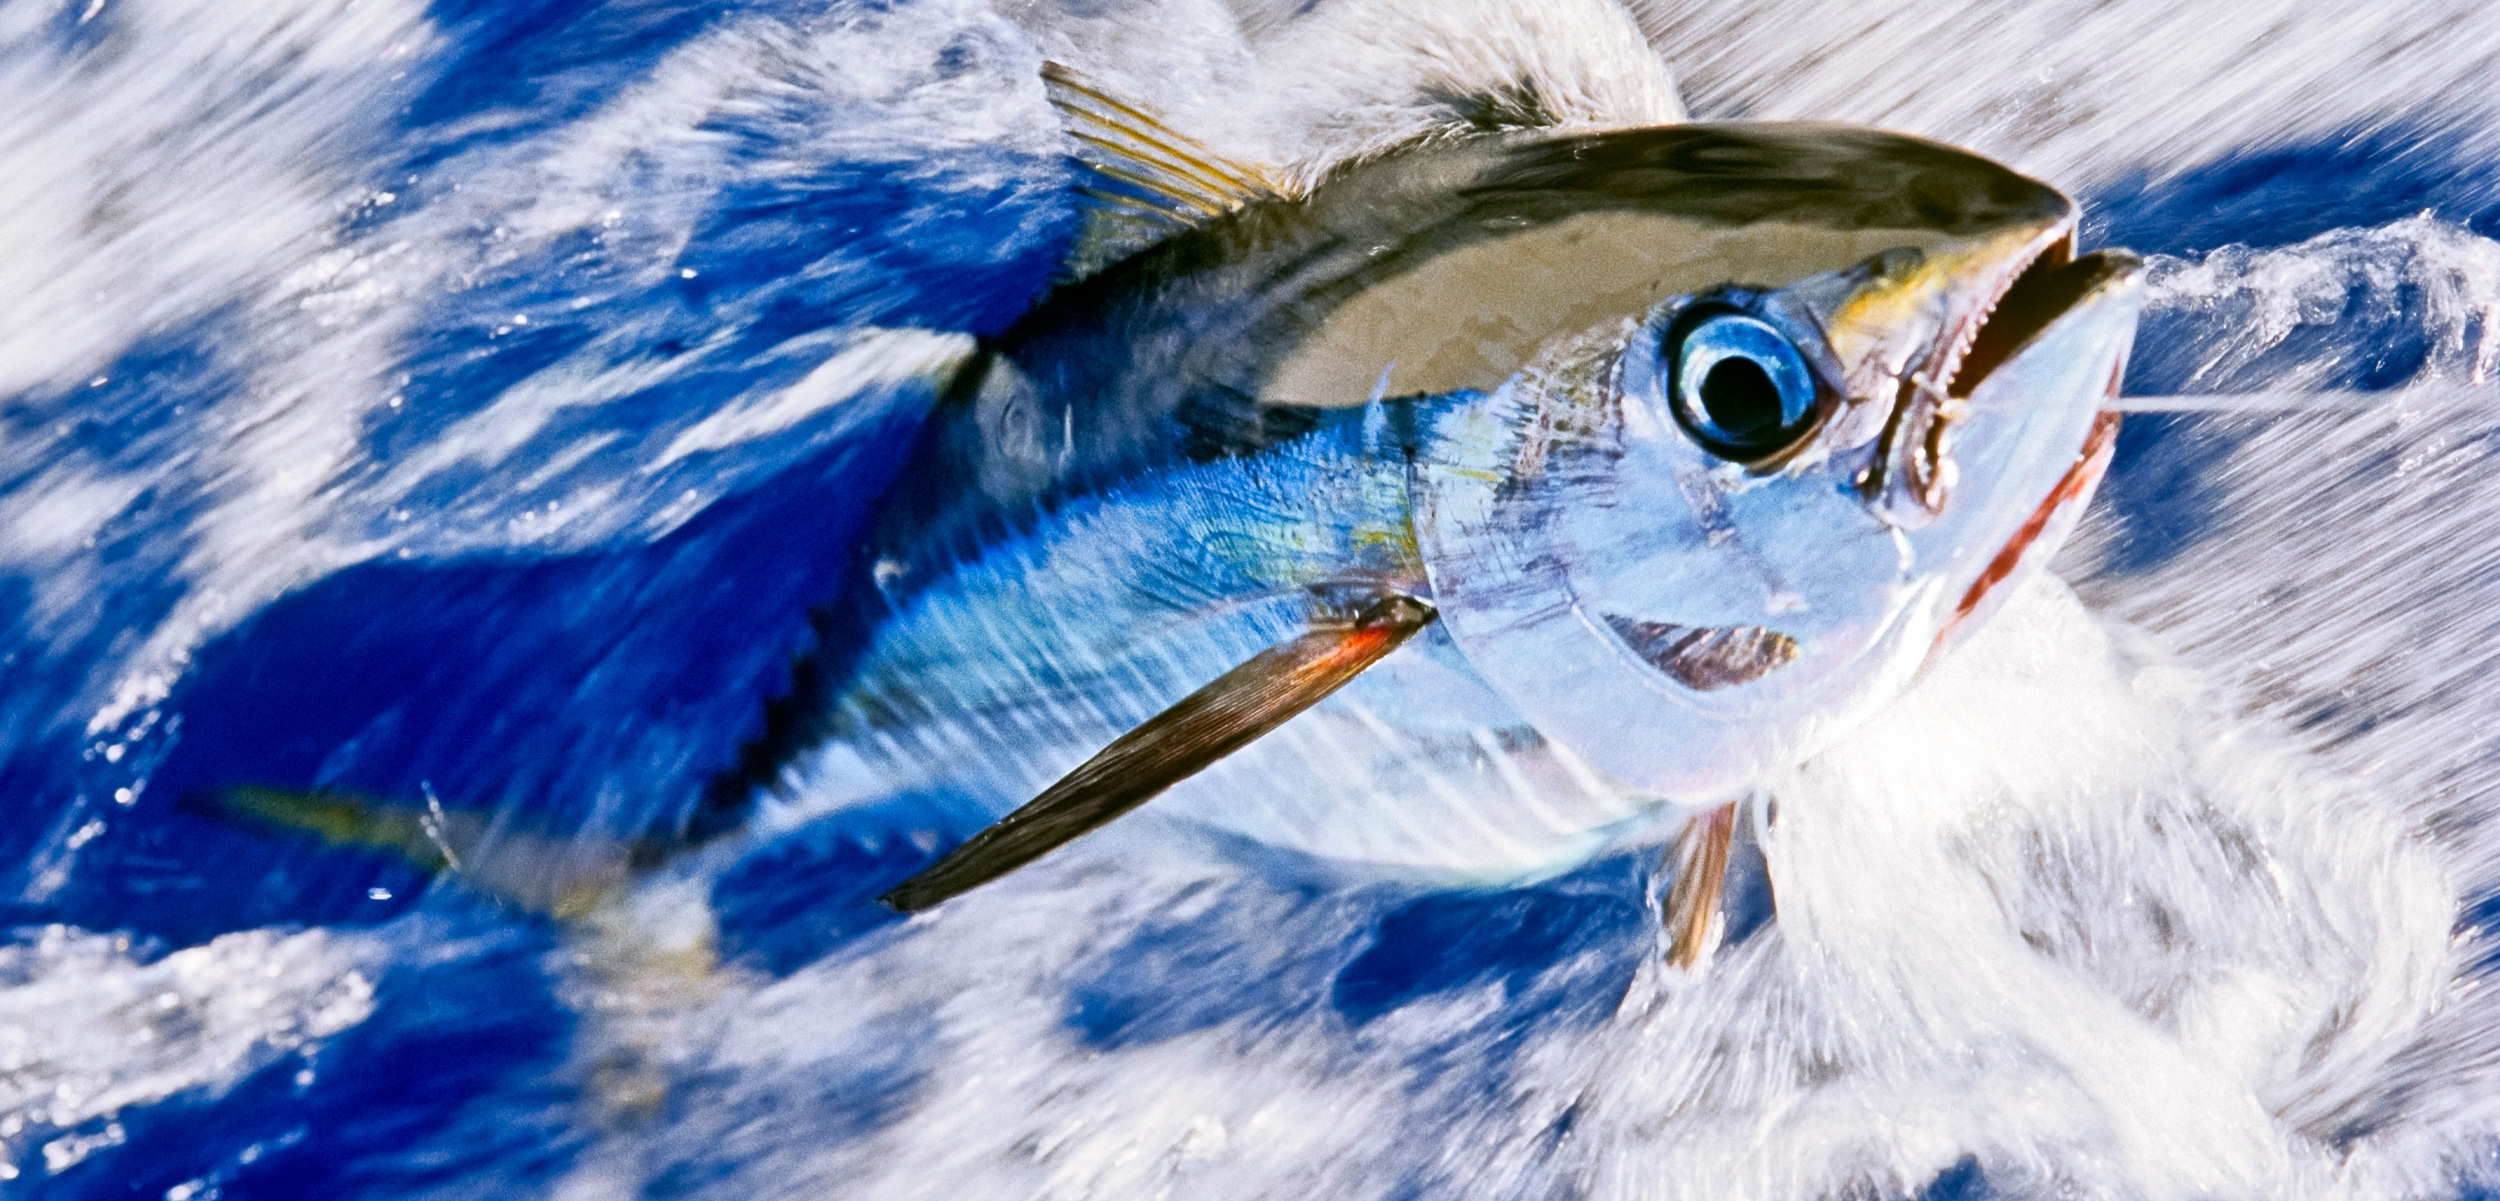 Juvenile Yellowfin tuna on line